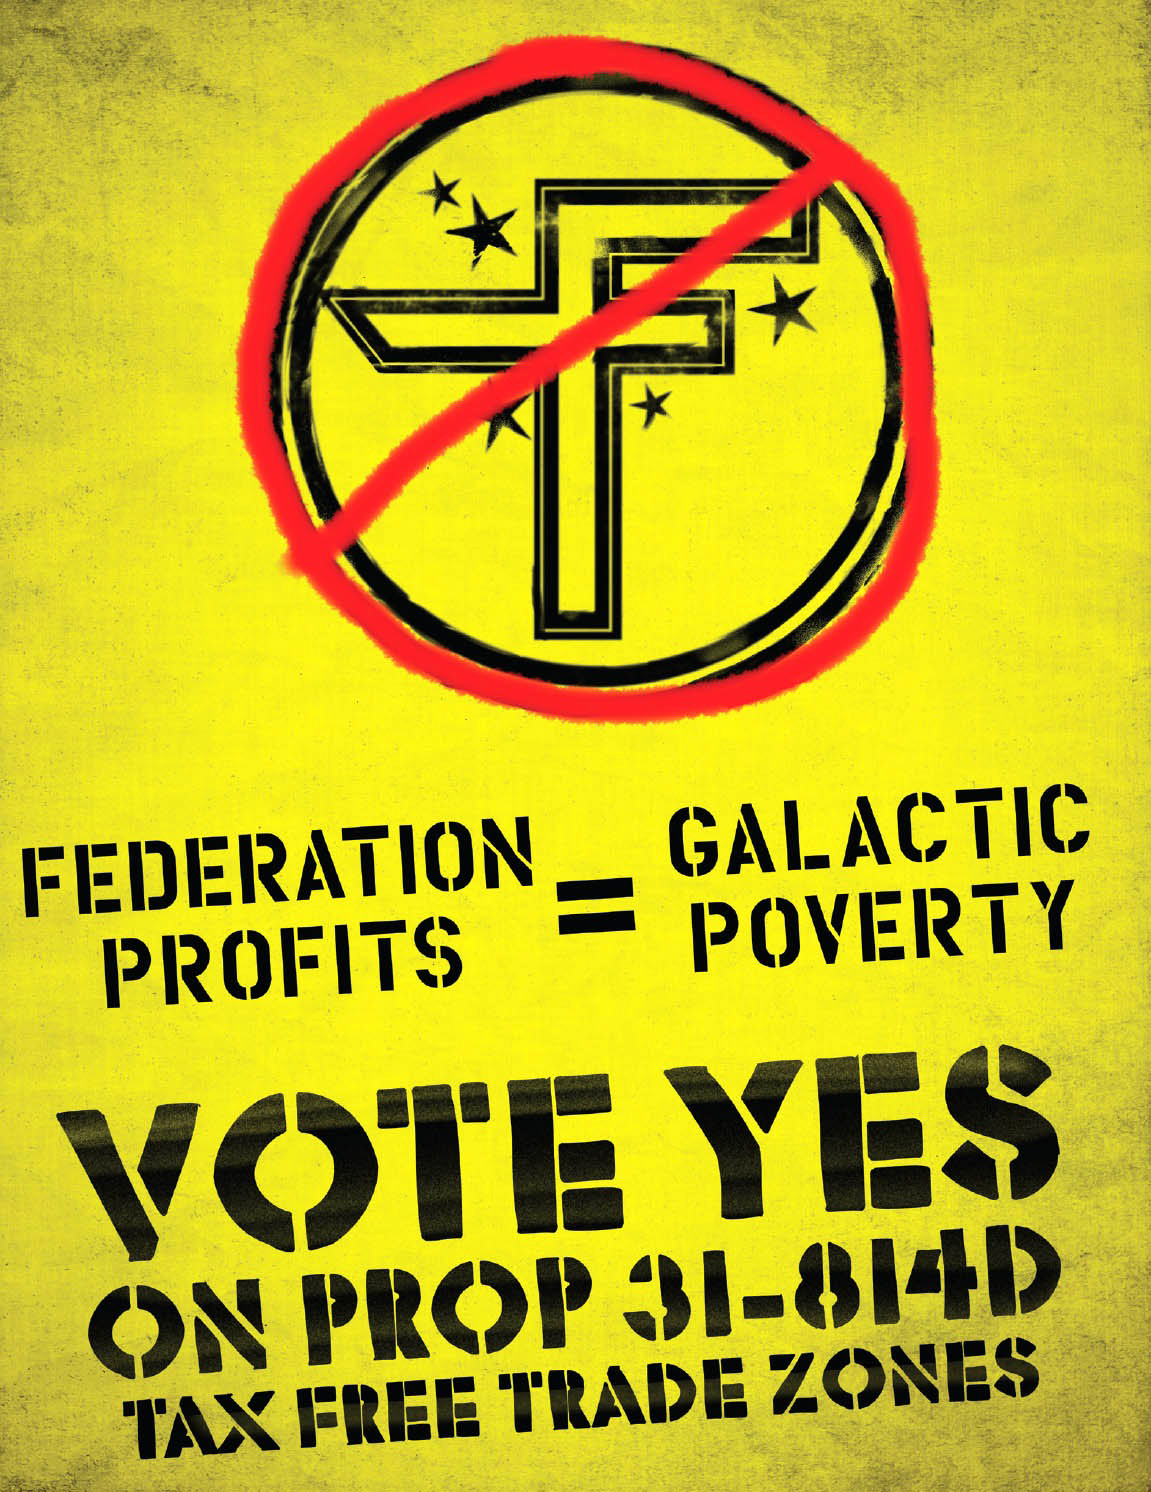 Vote Yes on Prop 31-814D